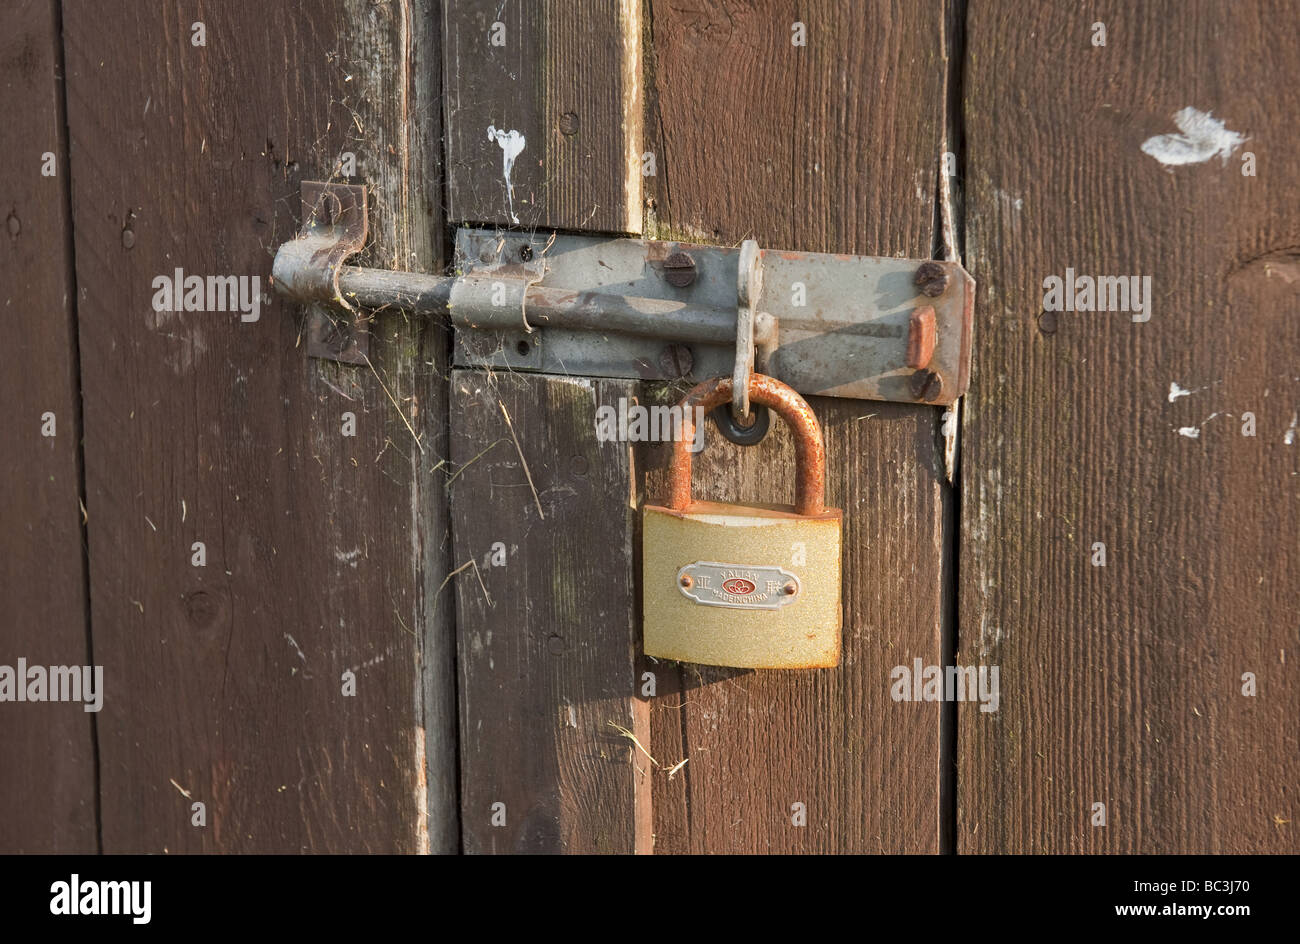 Sliding door bolt stock photos sliding door bolt stock images close up of locked rusty padlock securing sliding door bolt on wood clad garageshed vtopaller Image collections